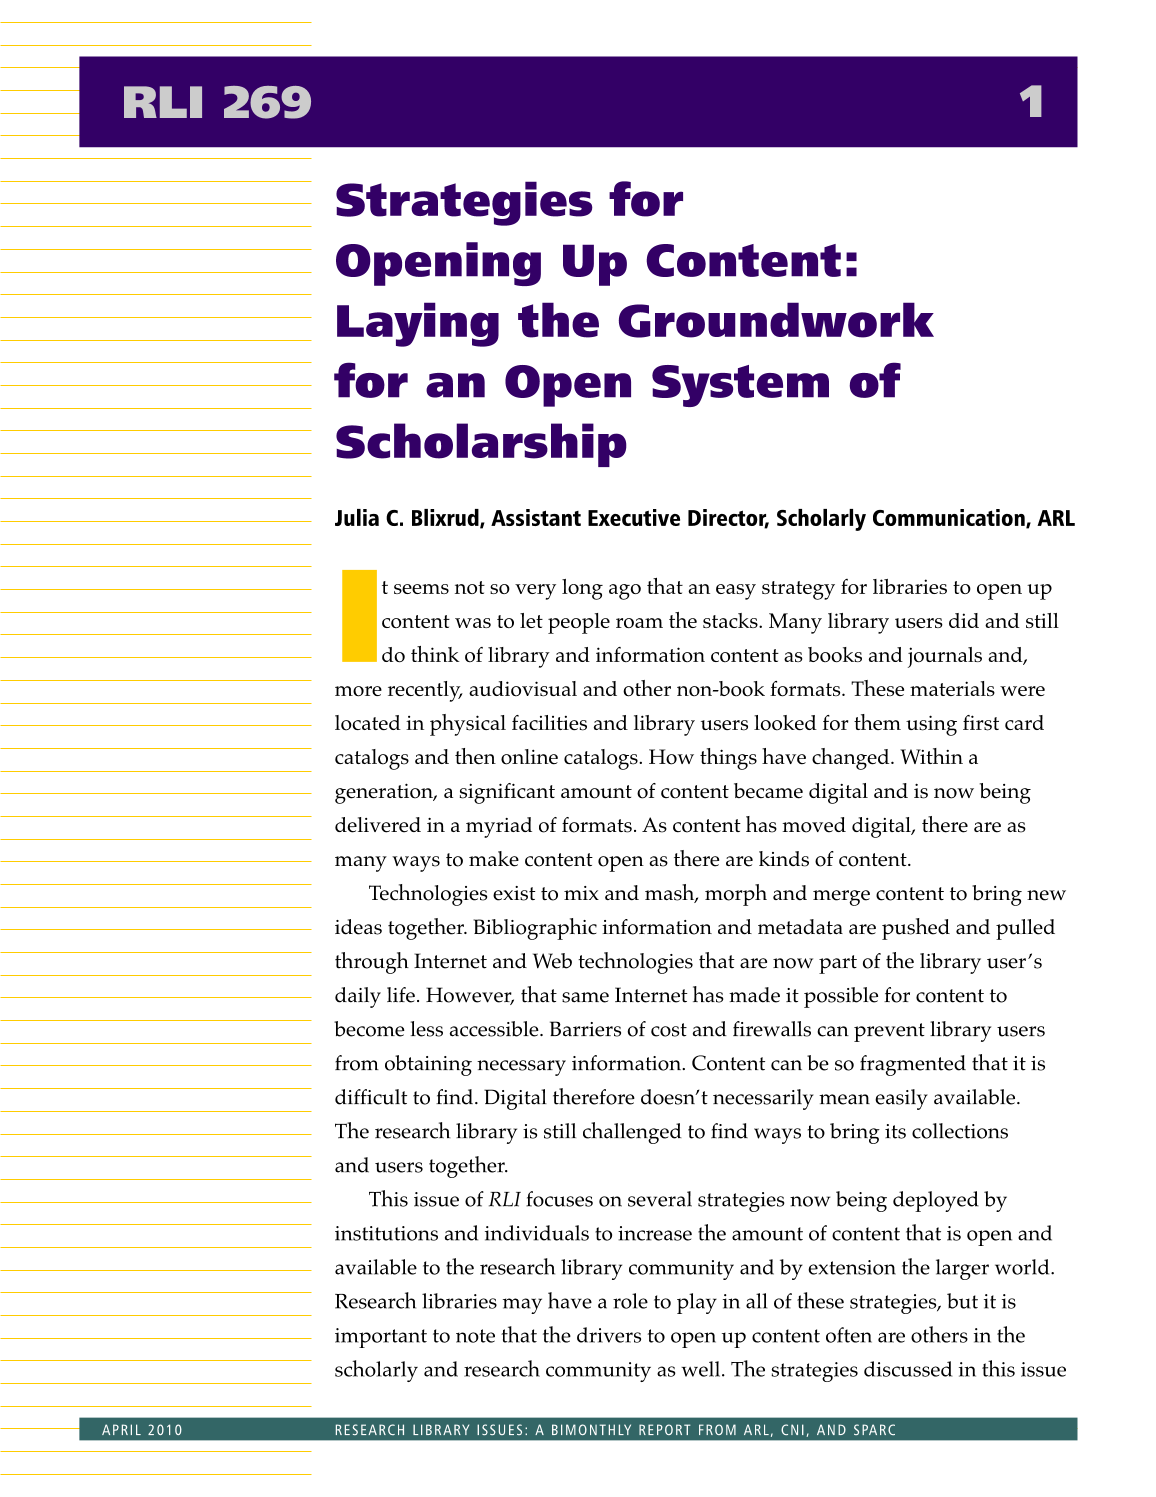 Research Library Issues, no. 269 (April 2010): Special Issue on Strategies for Opening Up Content page 2